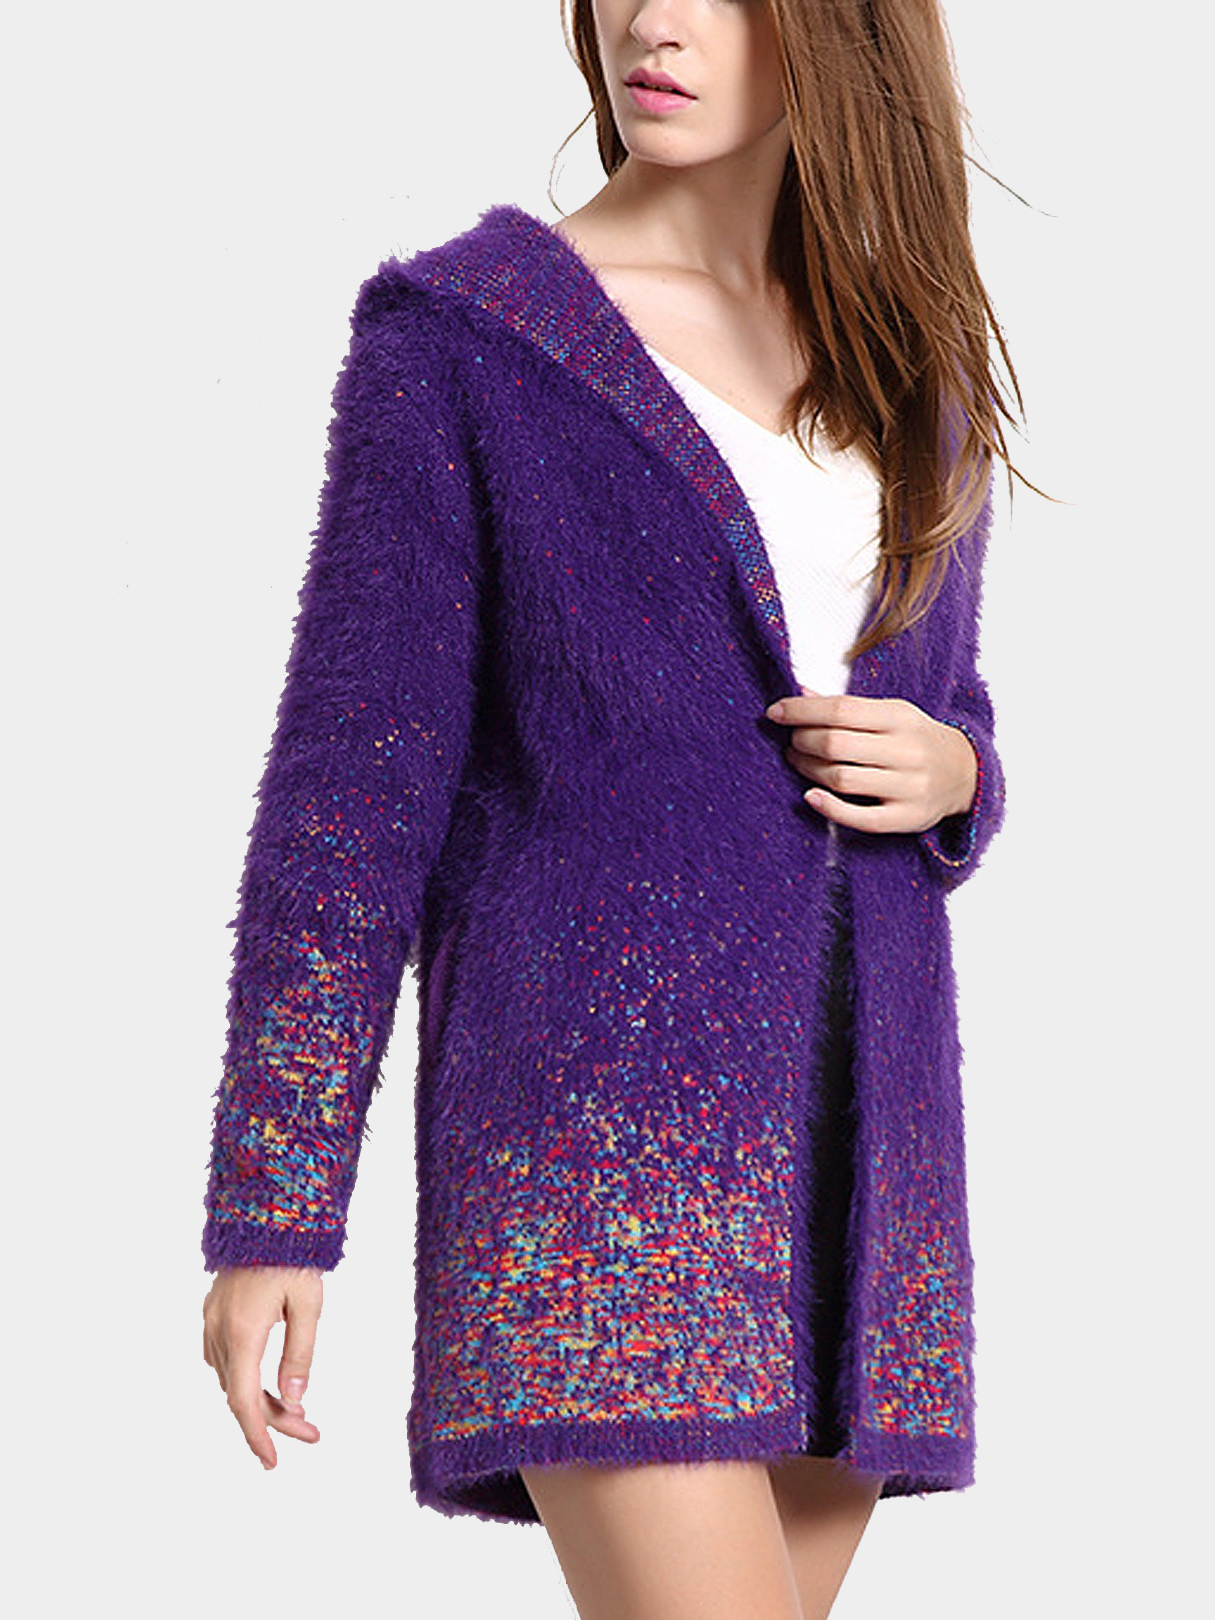 Purple Hooded Cardigan with Colorful Pattern